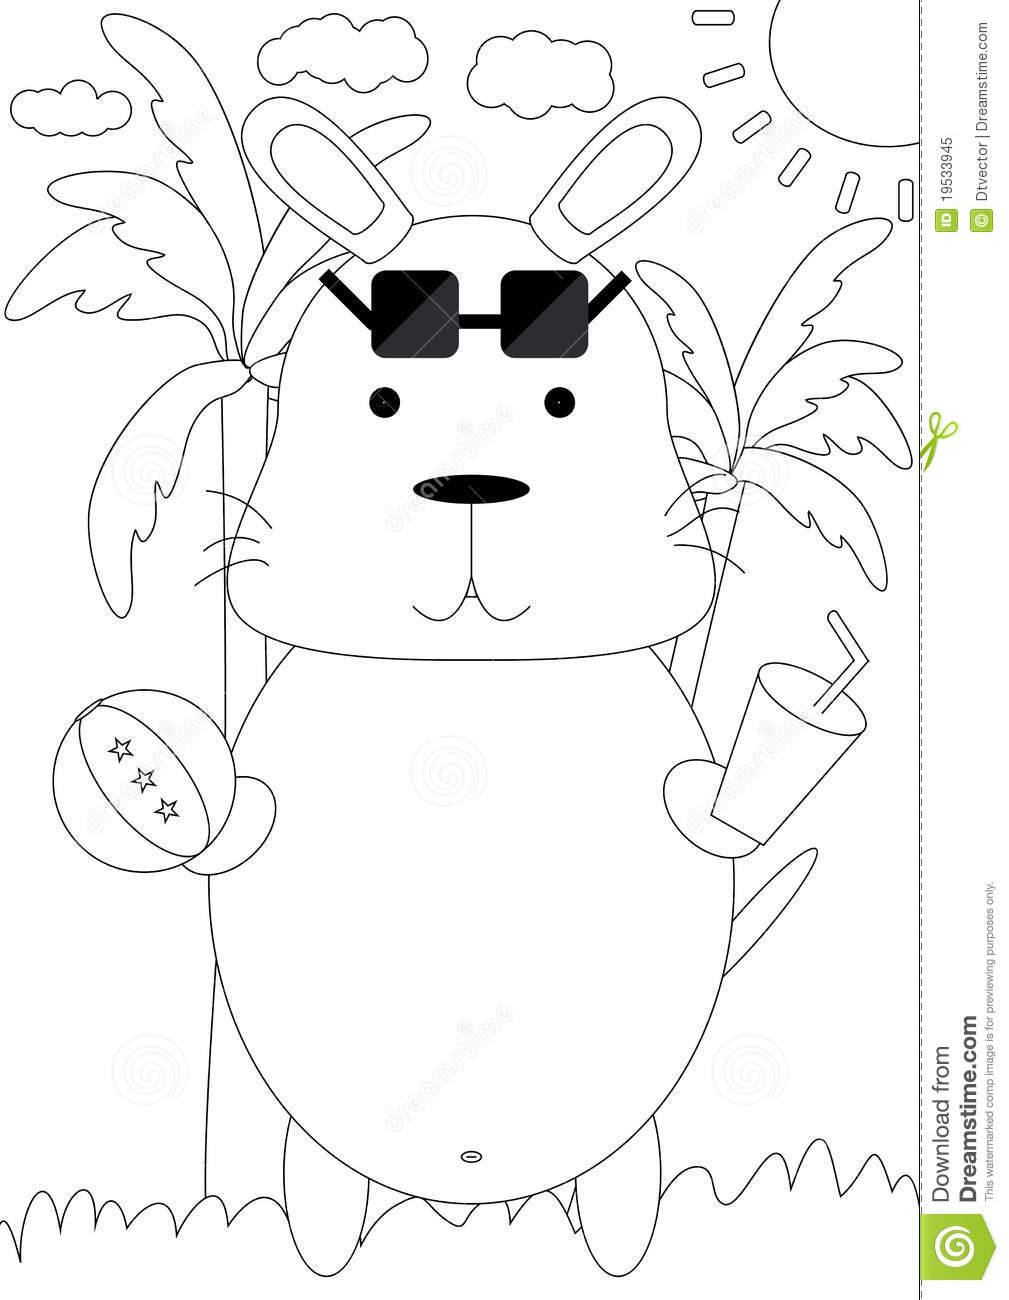 Free coloring pages of handas animals